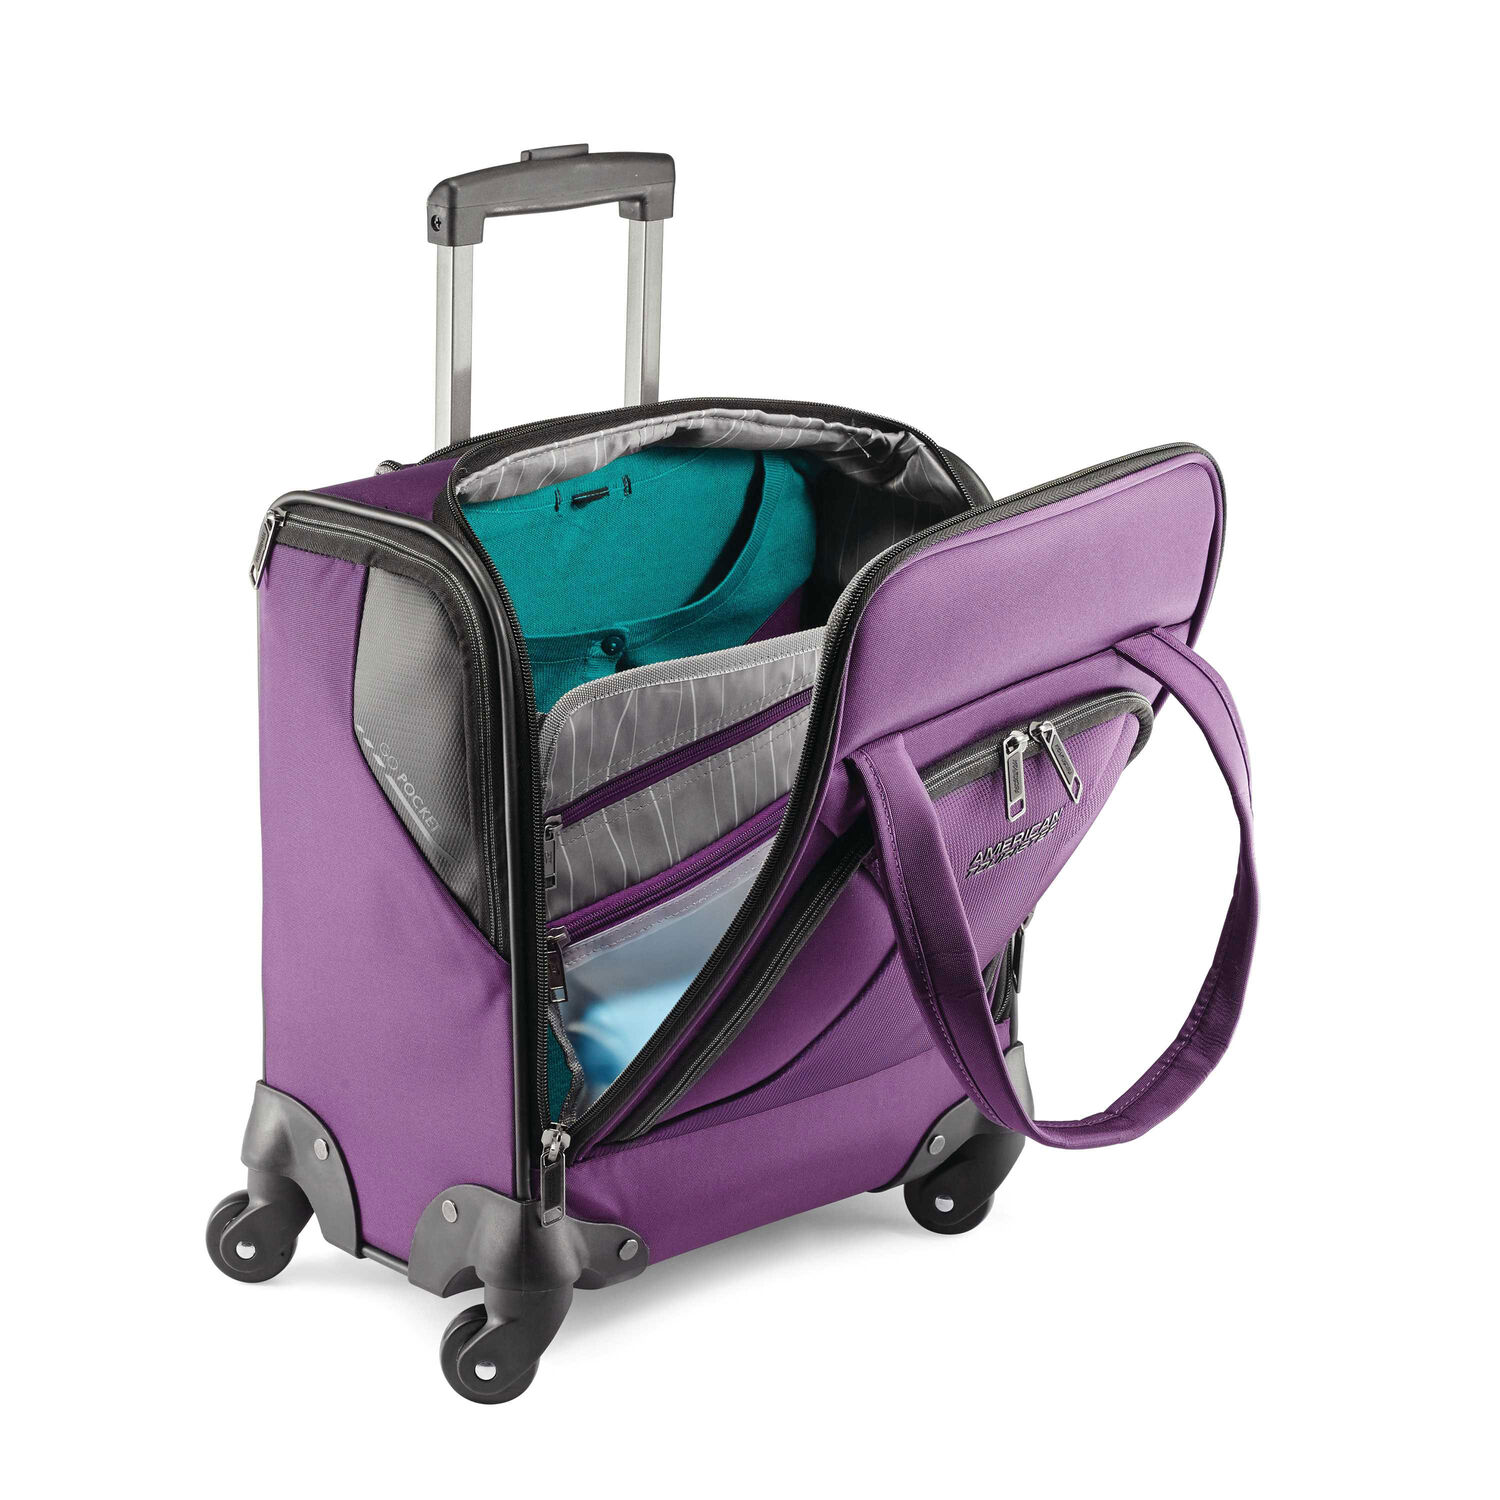 92beacc7a29 American Tourister Zoom Underseater Spinner Tote in the color Purple.